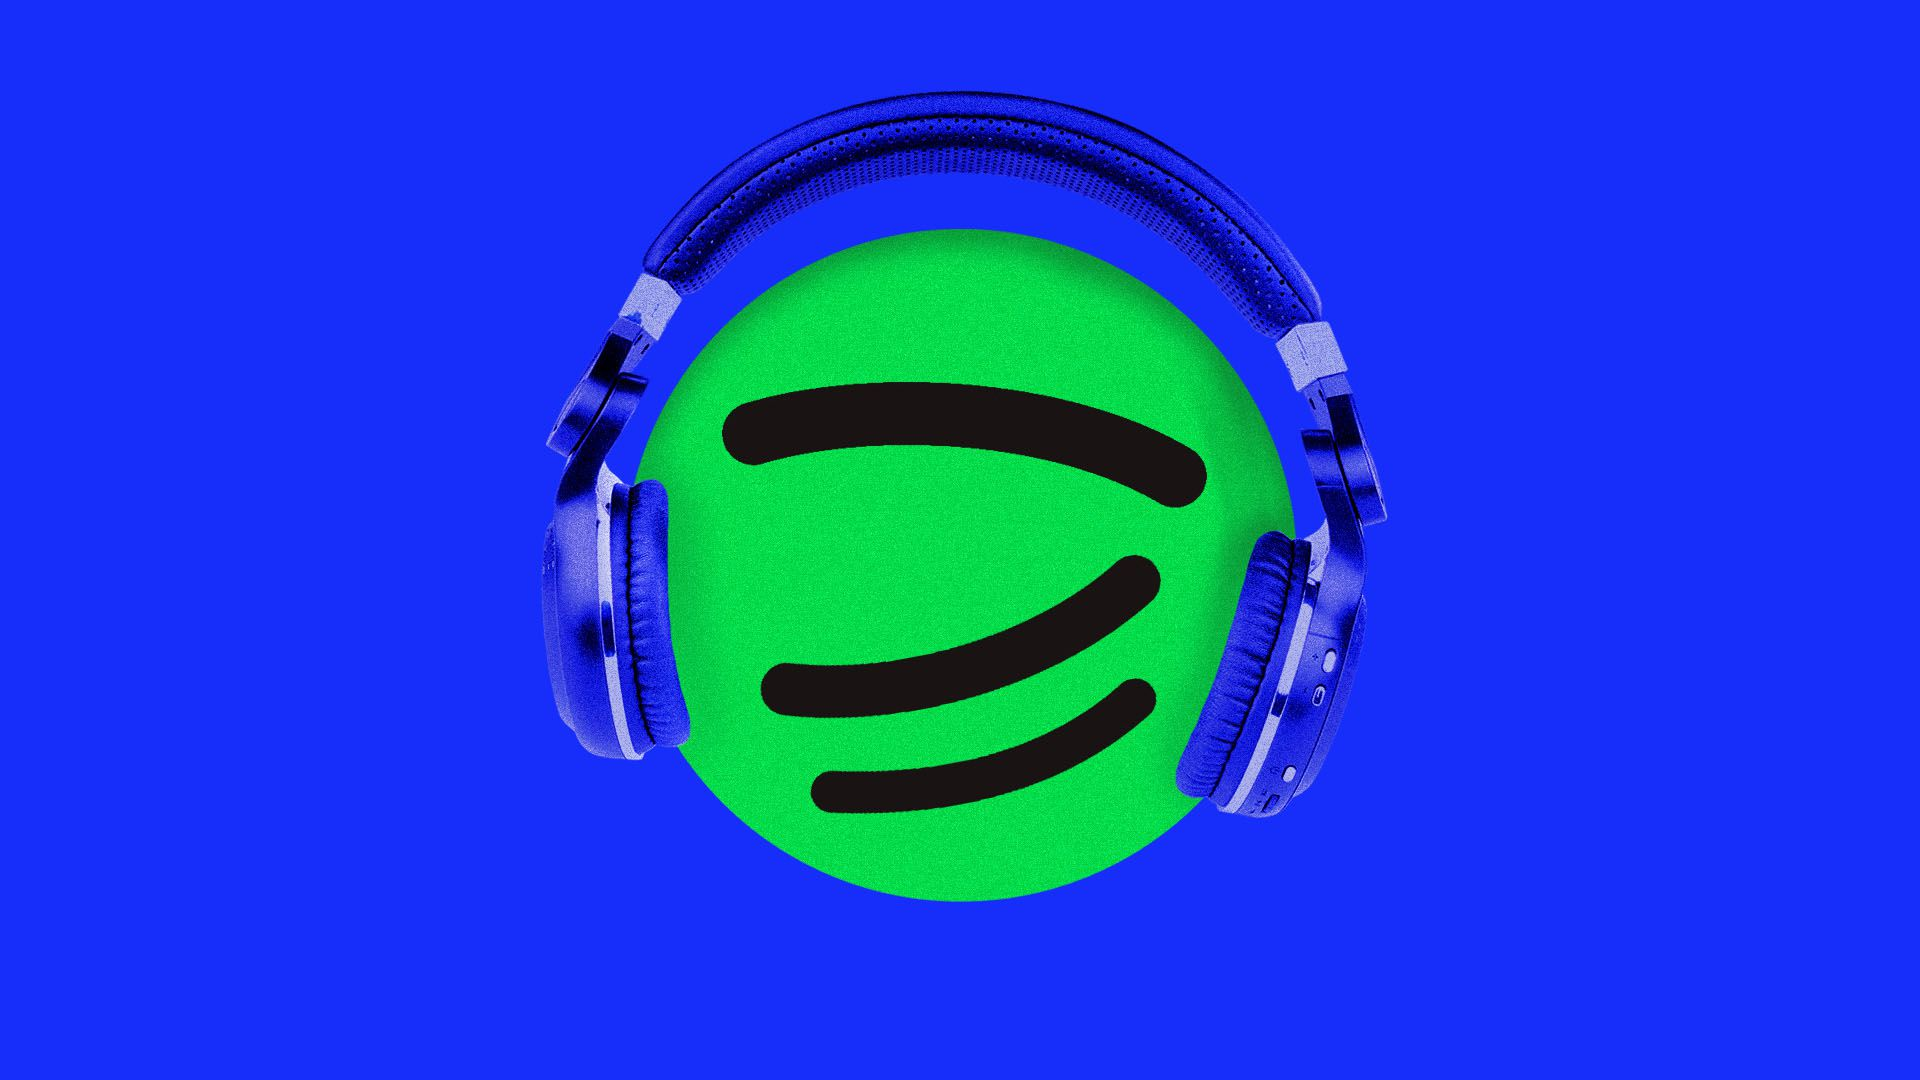 Illustration of podcast symbol with headphones on and smiling